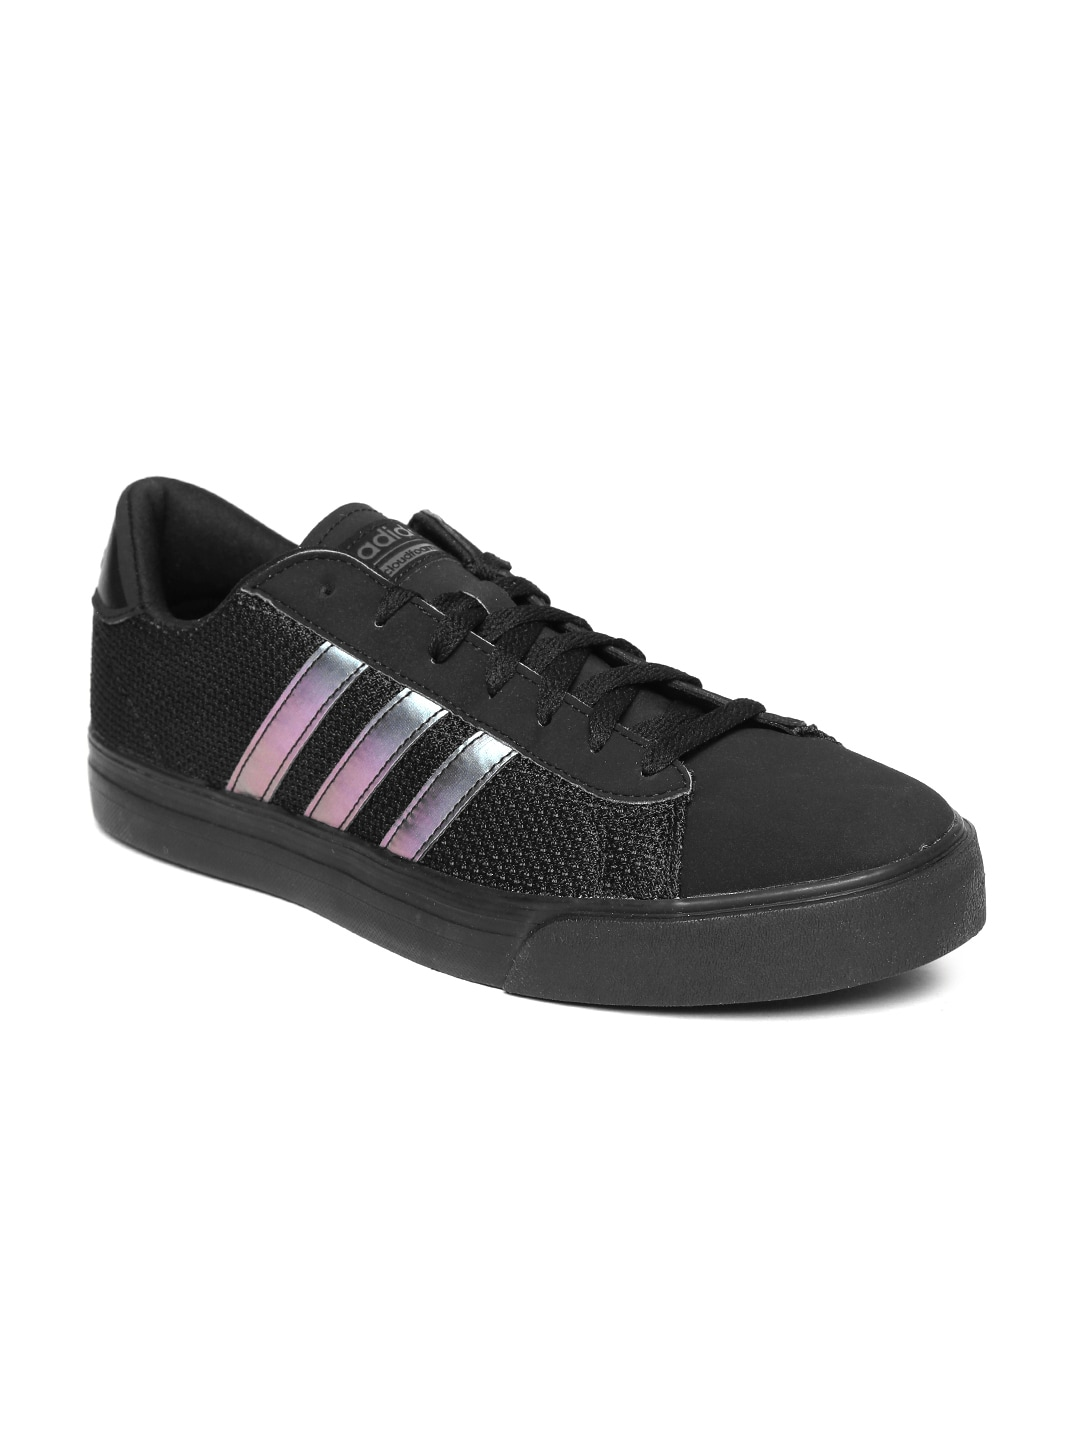 big sale b9572 65968 Adidas Neo Shoes - Buy Adidas Neo Shoes online in India